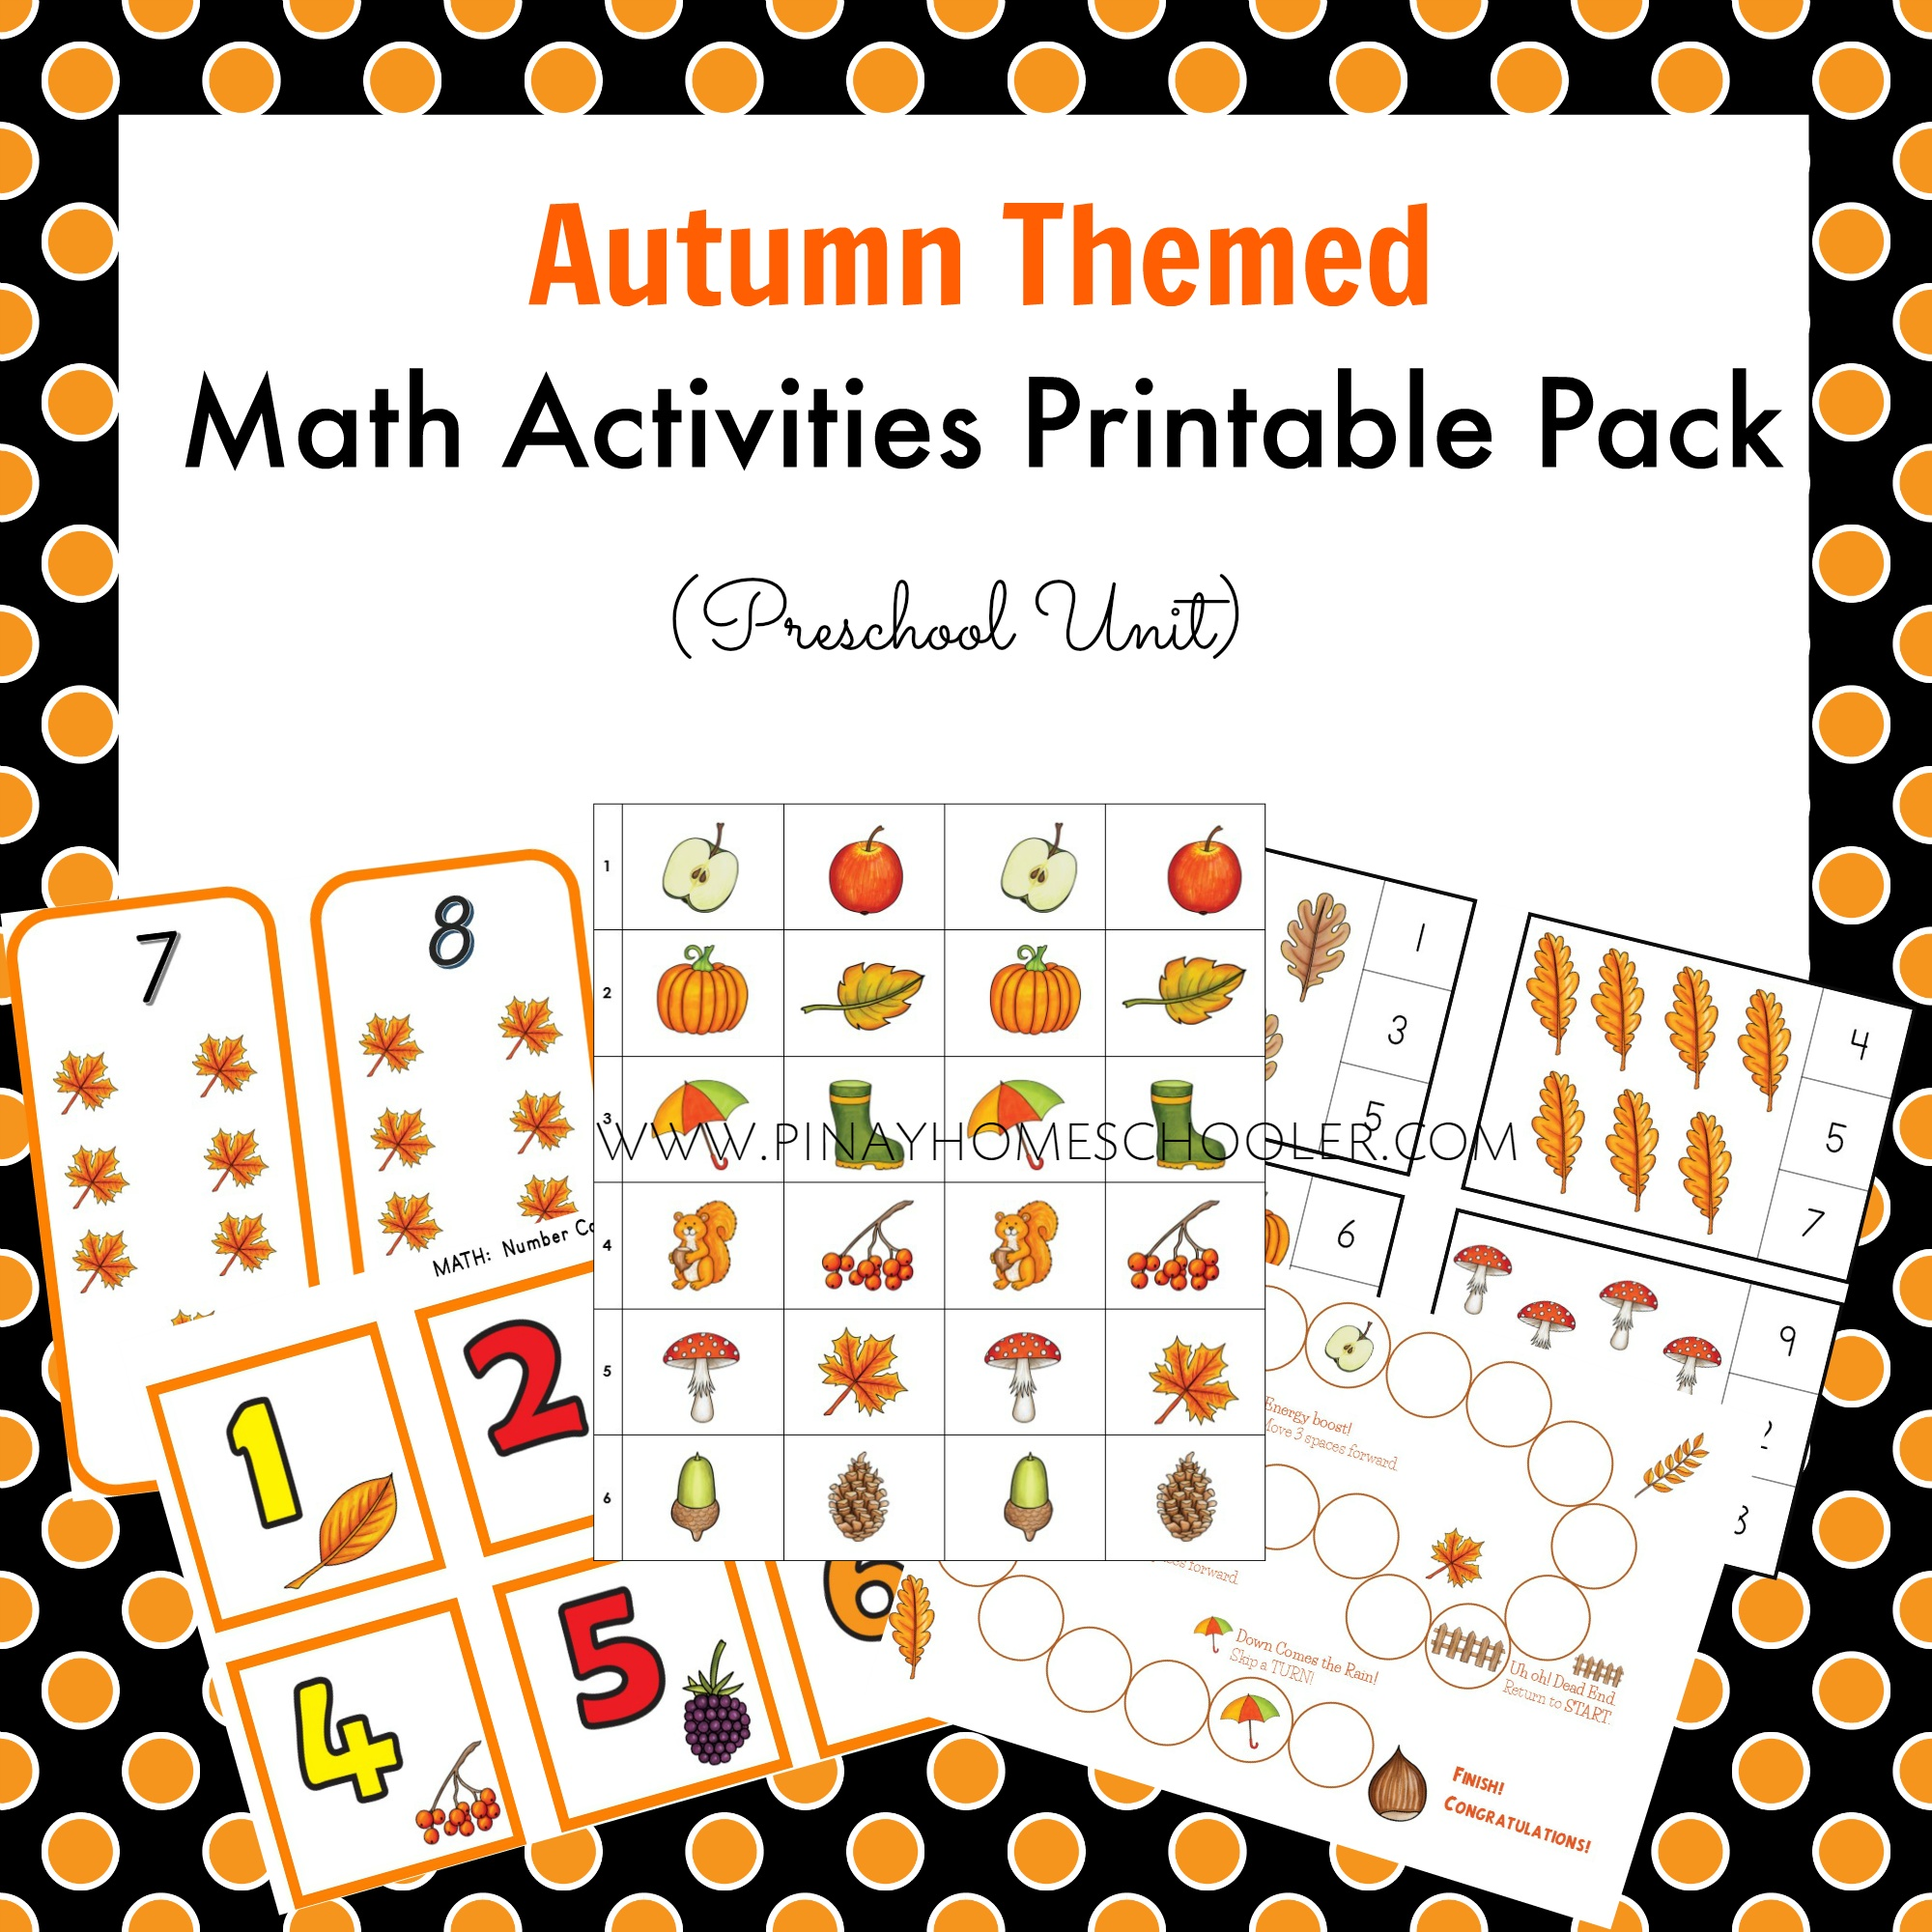 September Preschool Unit Autumn Themed Math Activities